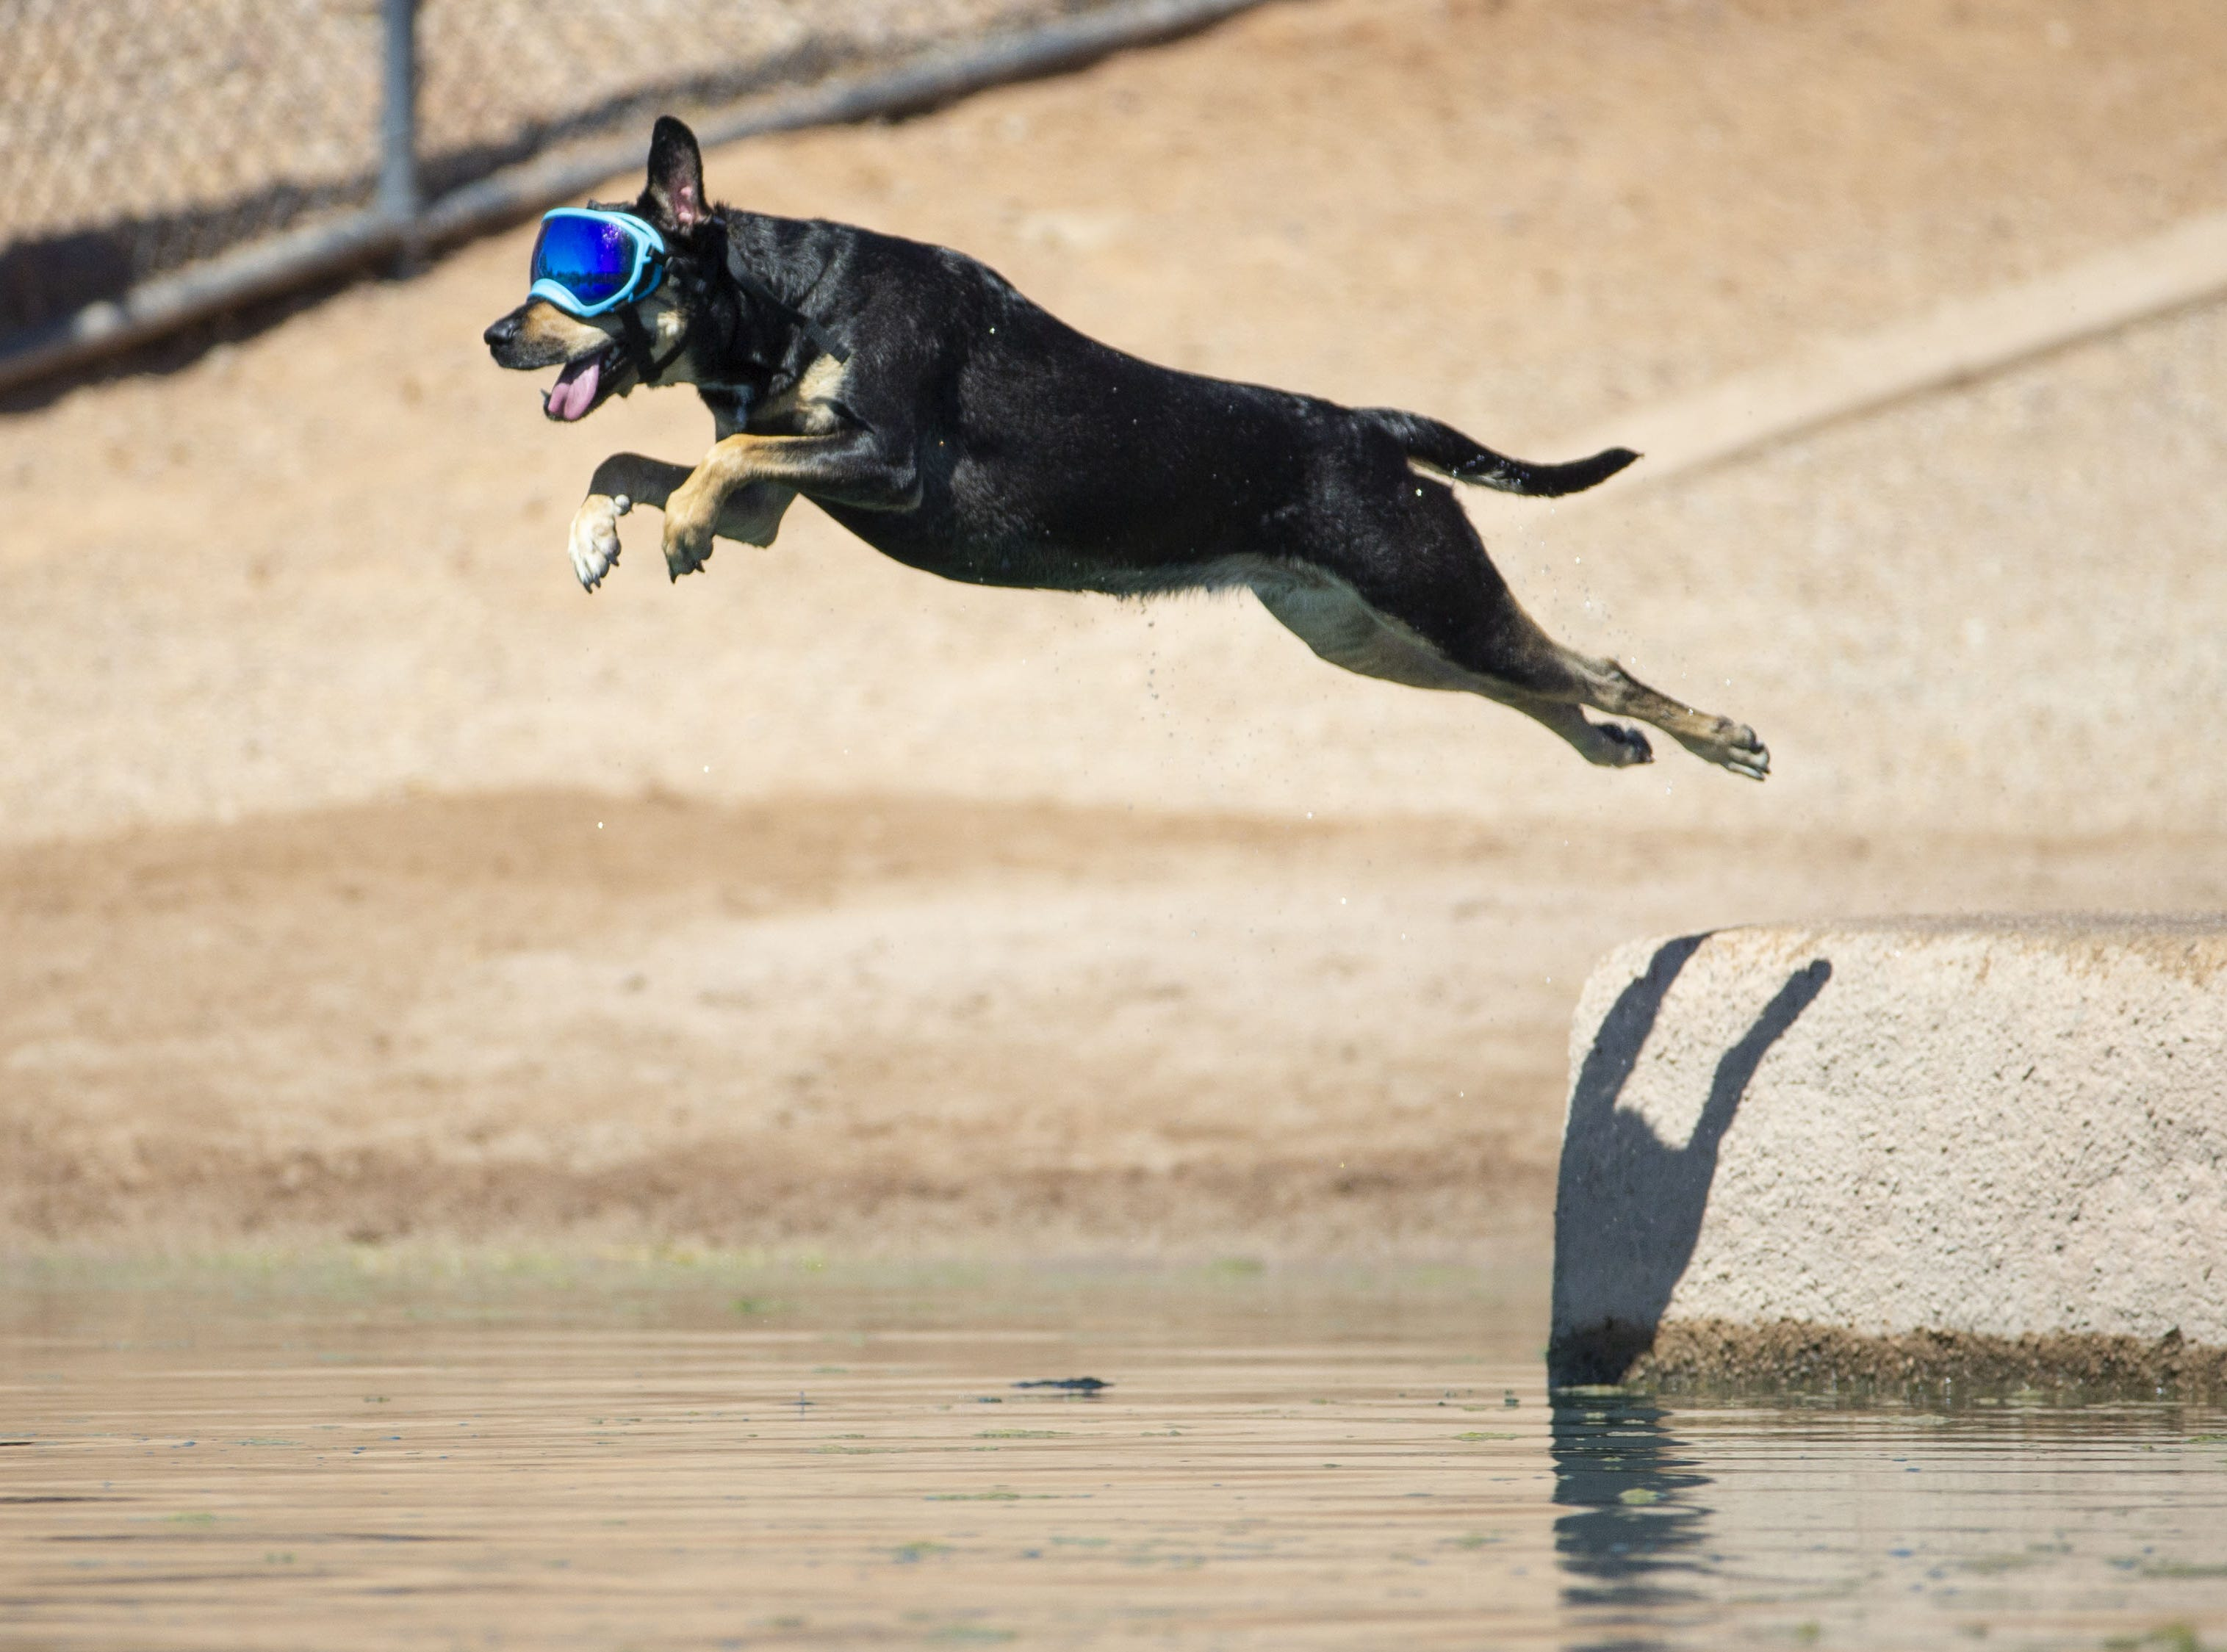 Cali, of Chandler,  cools off in the lake at  Cosmo Dog Park in Gilbert on September 13, 2018.